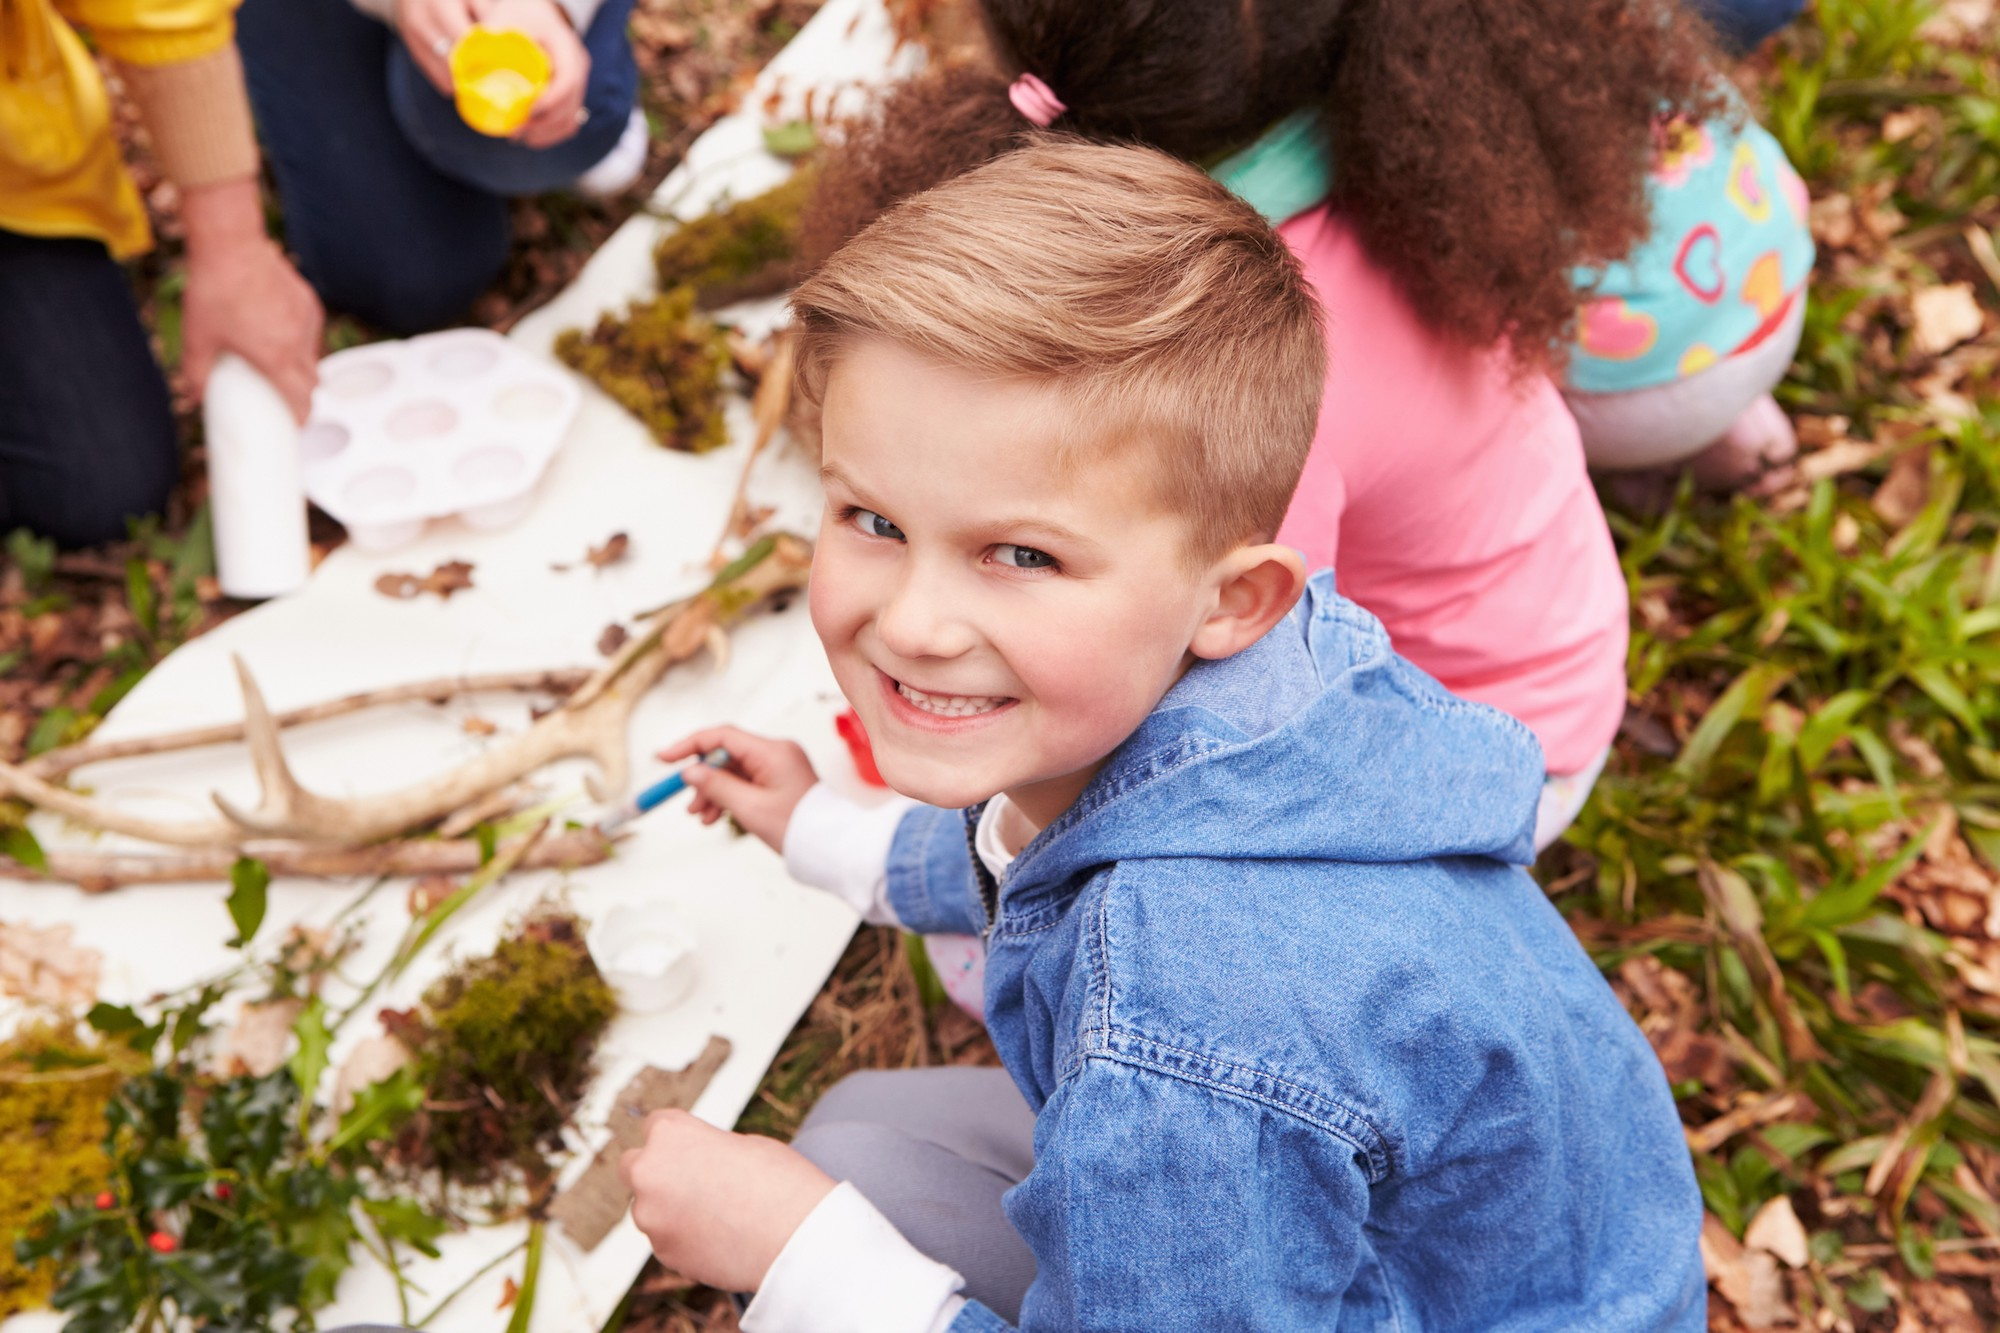 Children work creatively engaging head, heart and hands